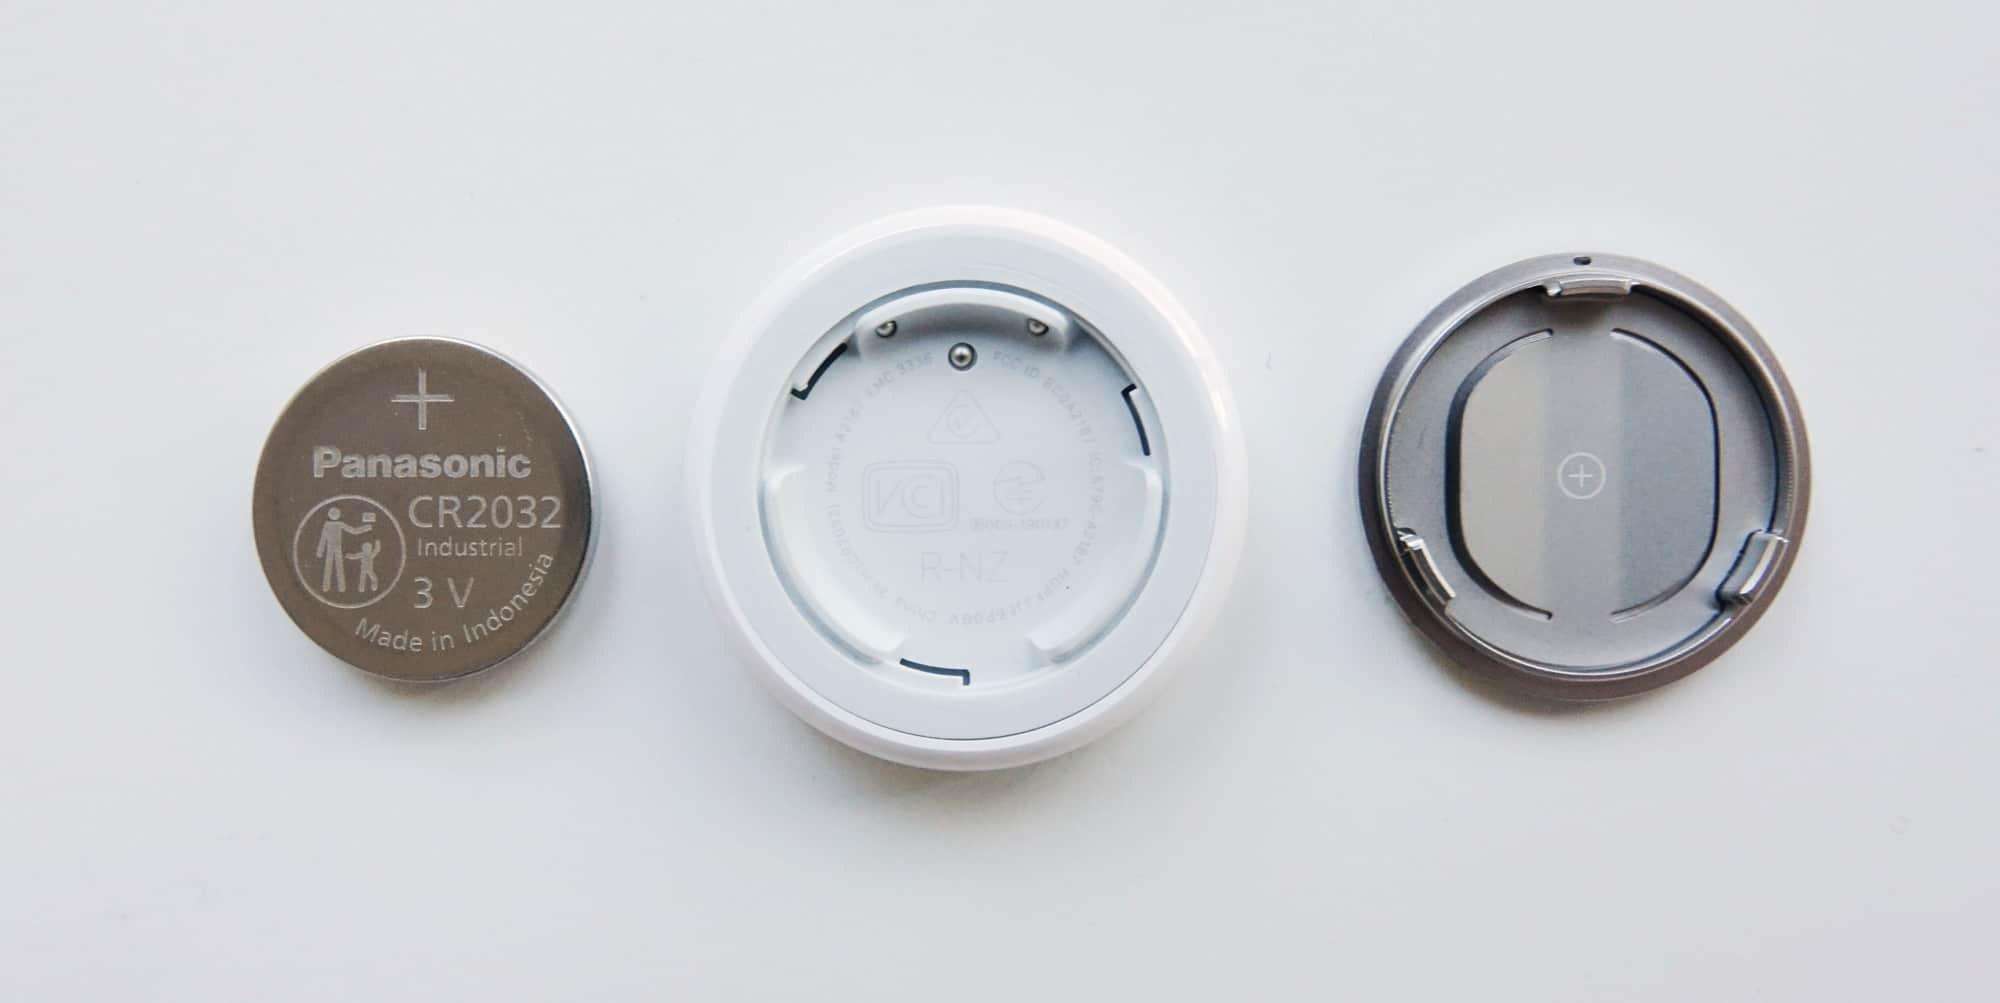 There's a CR2032 battery inside the Apple AirTag.